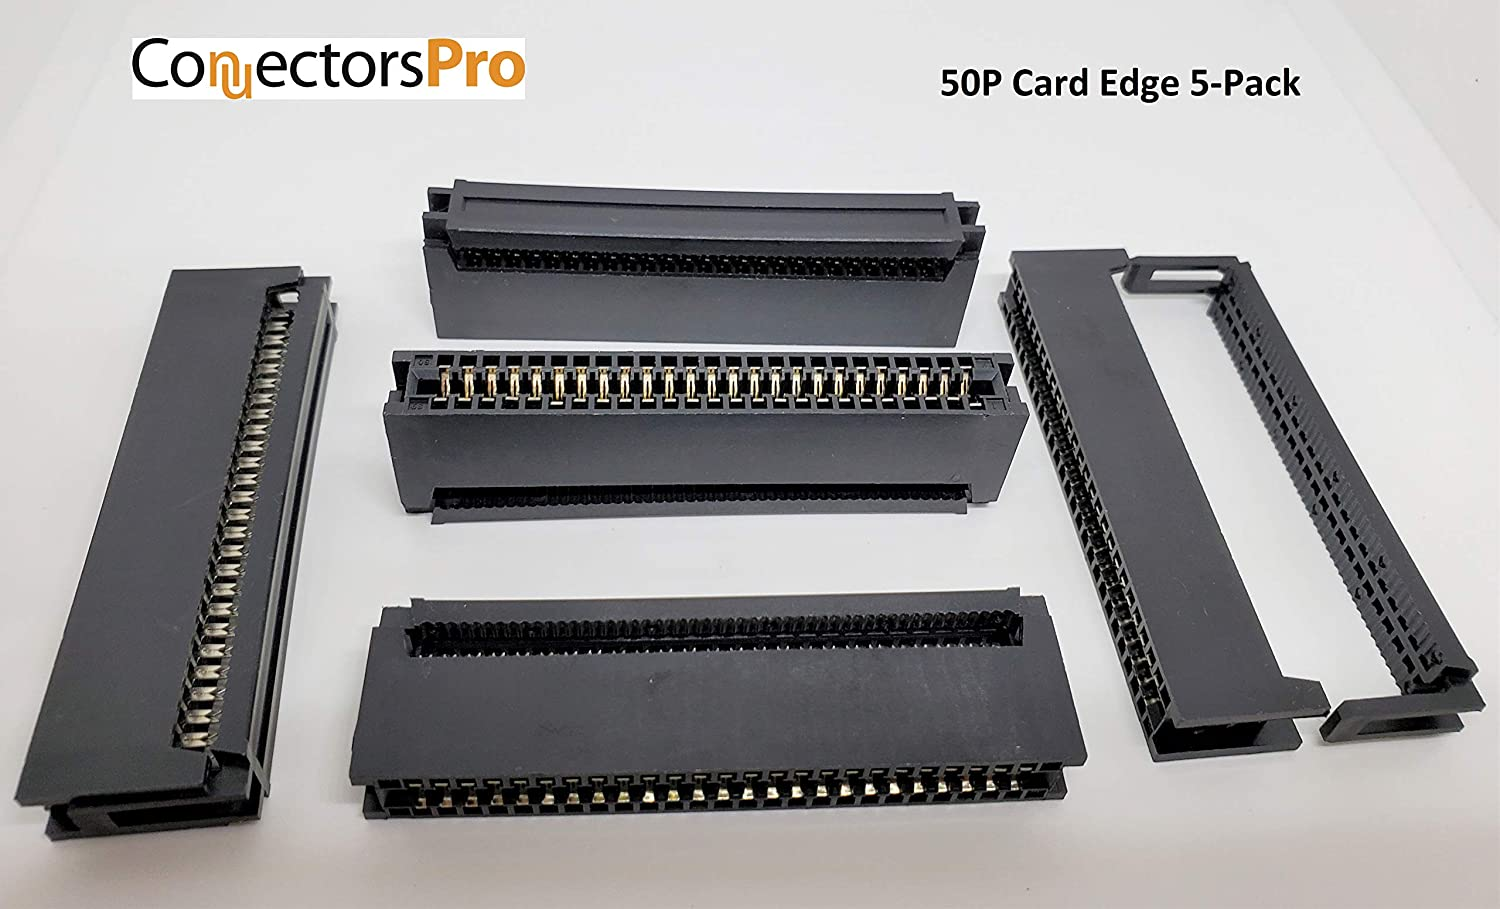 PC Accessories 50 Pins IDC 2.54mm Card Edge Connector for 1.27mm Flat Ribbon Cable CE50 5-Pack